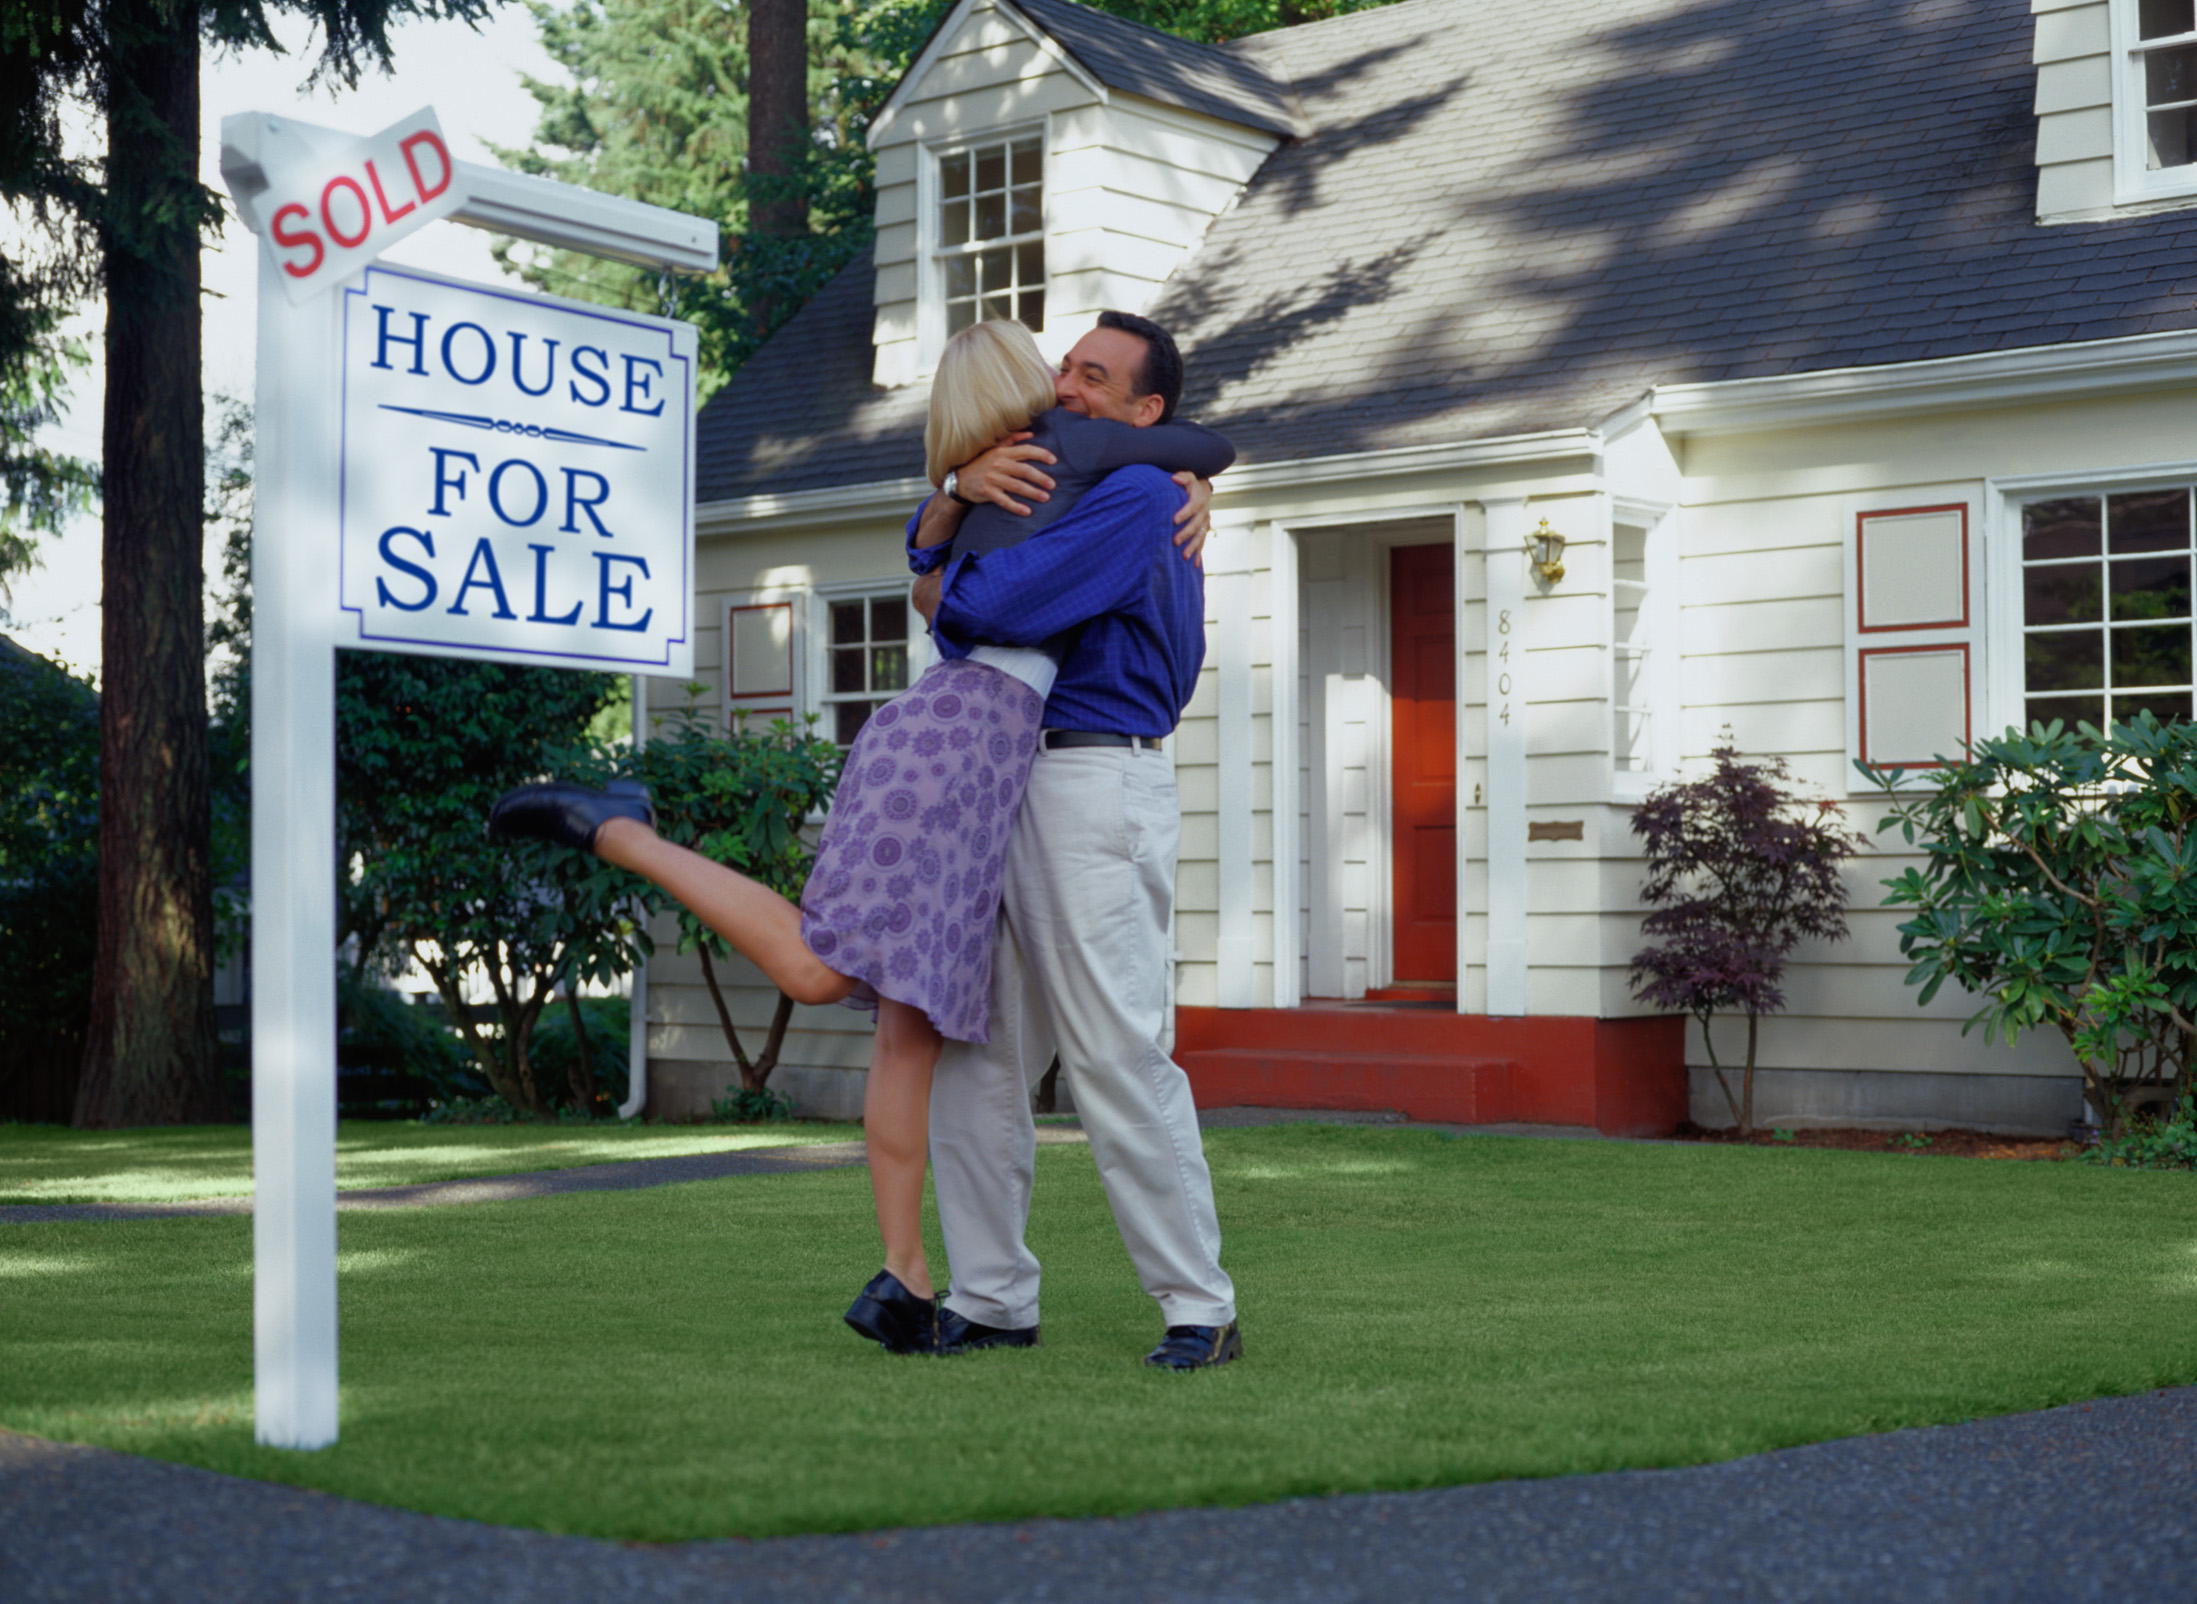 20846-couple-with-sold-sign.jpg